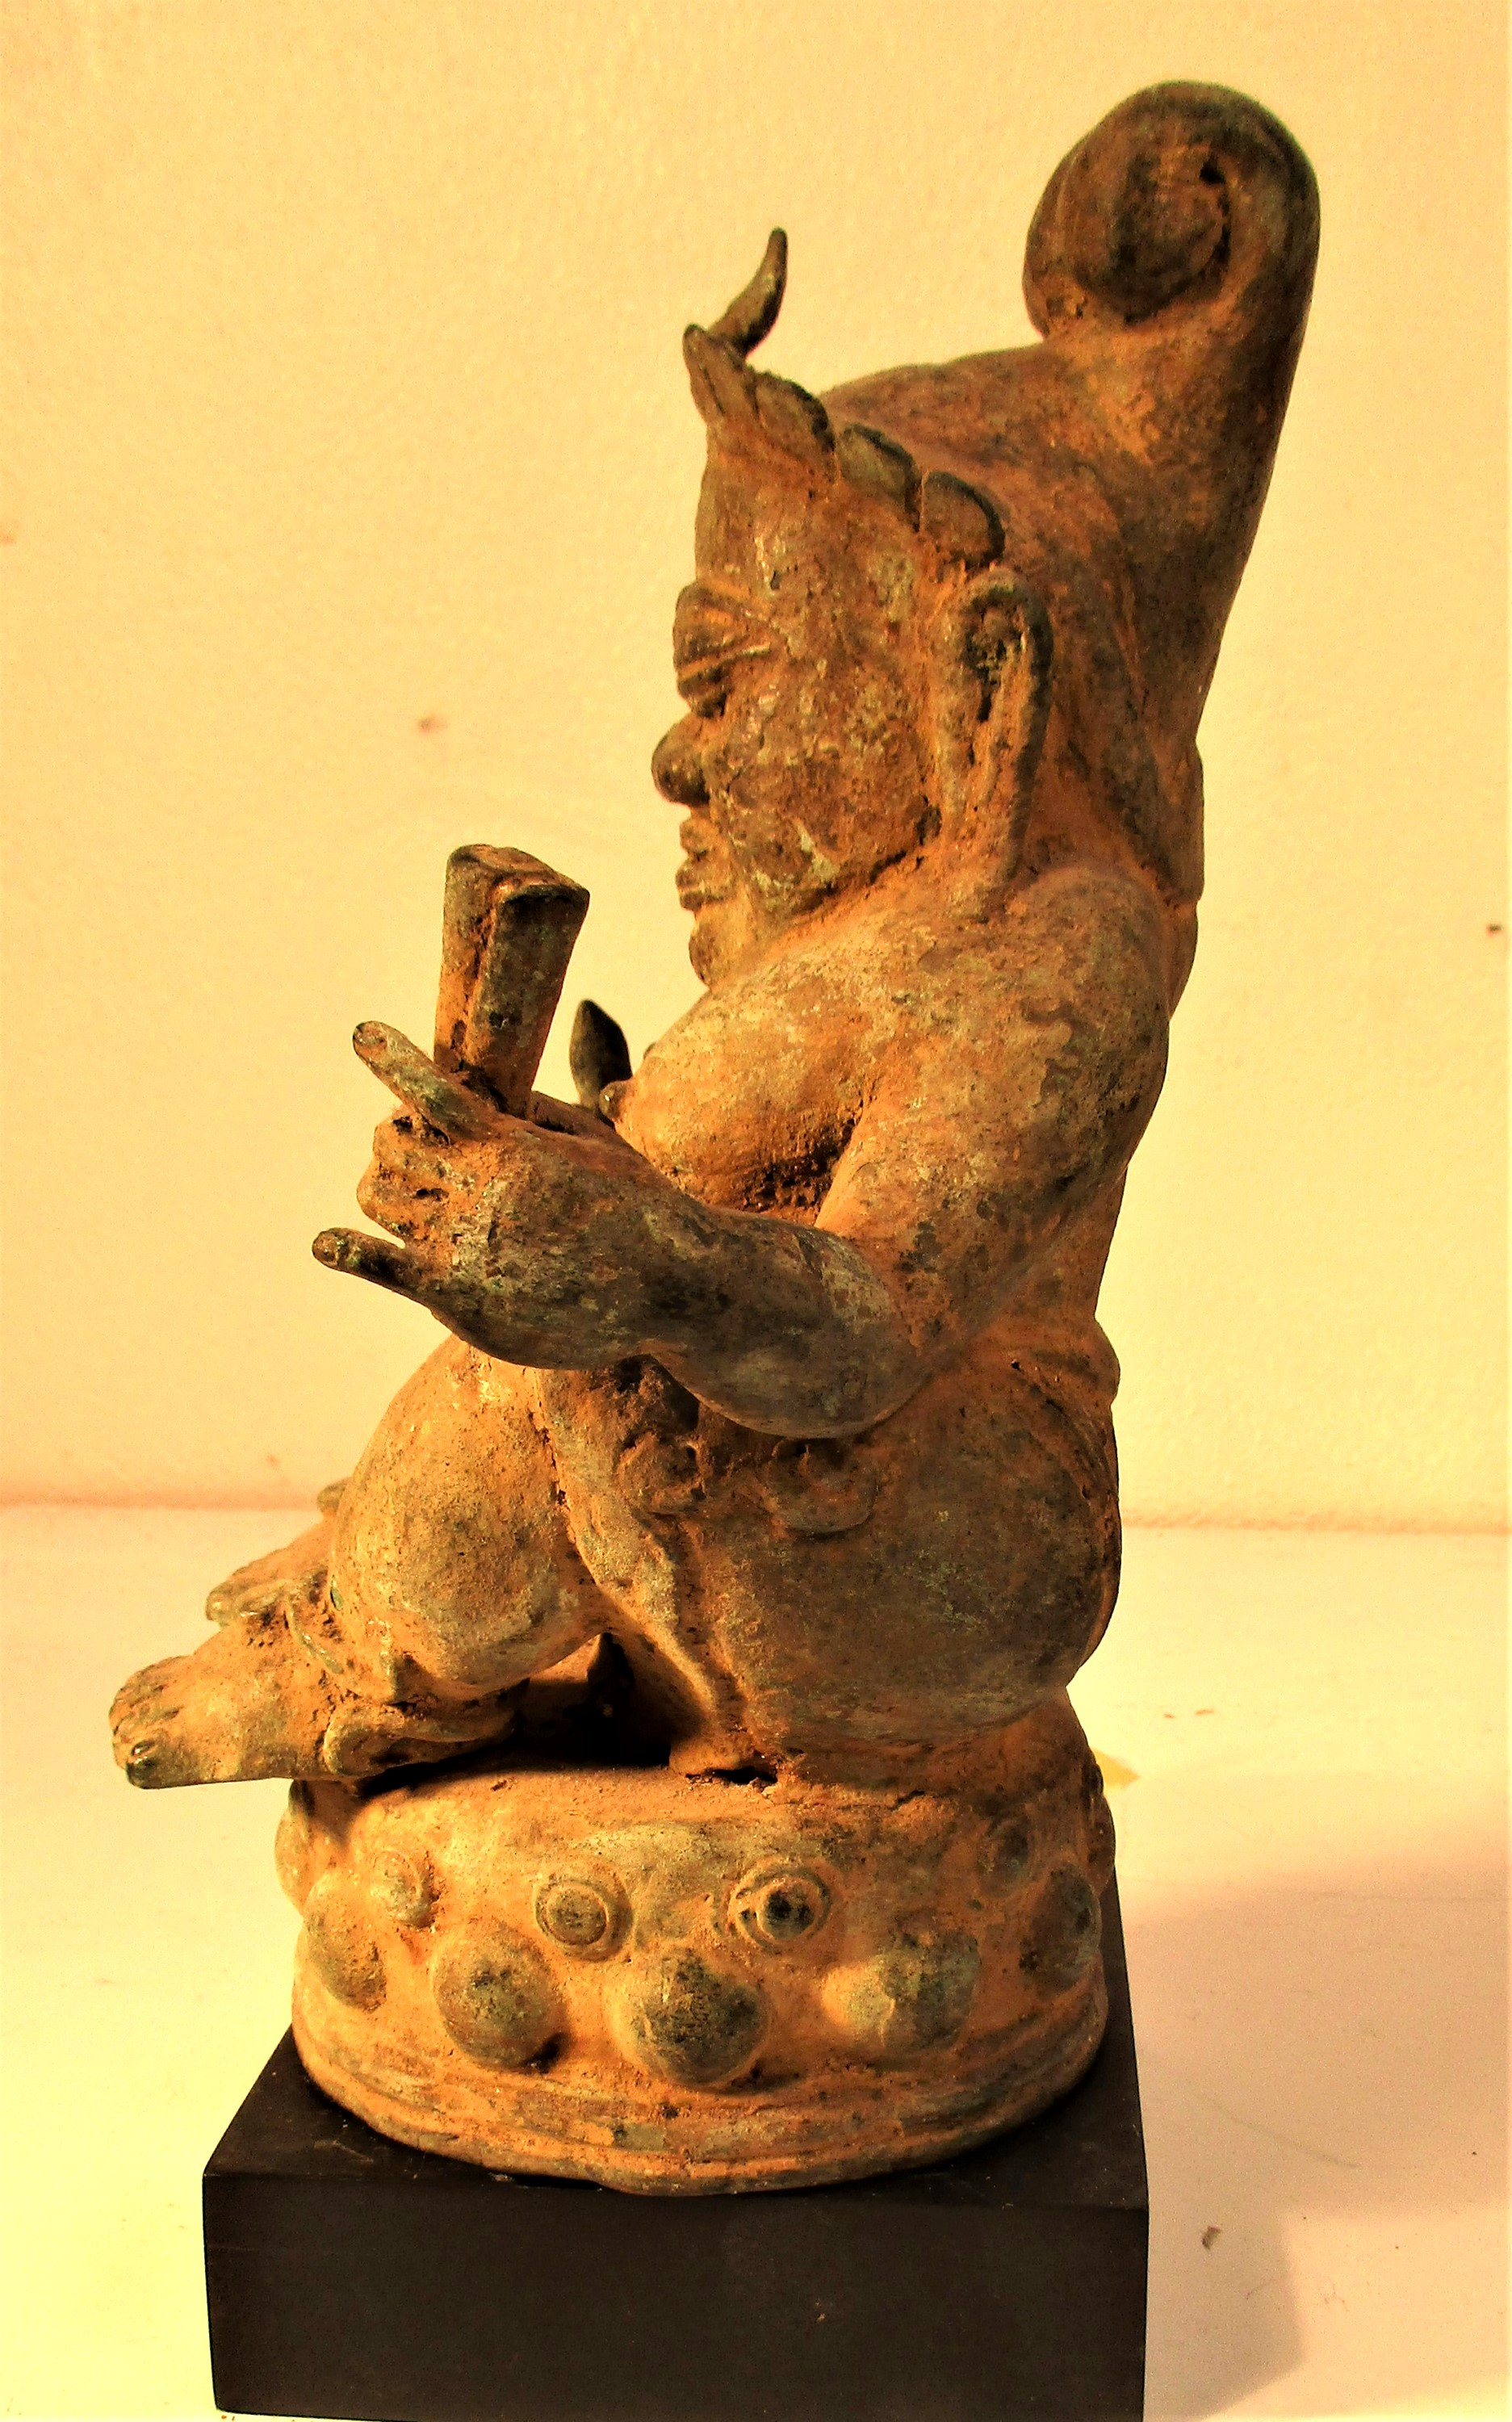 Bronze Chinese Buddha, cast in Bali. Buddha is holding a torje and a horn. 25 x 15cm. Early 21st c. - Image 2 of 4